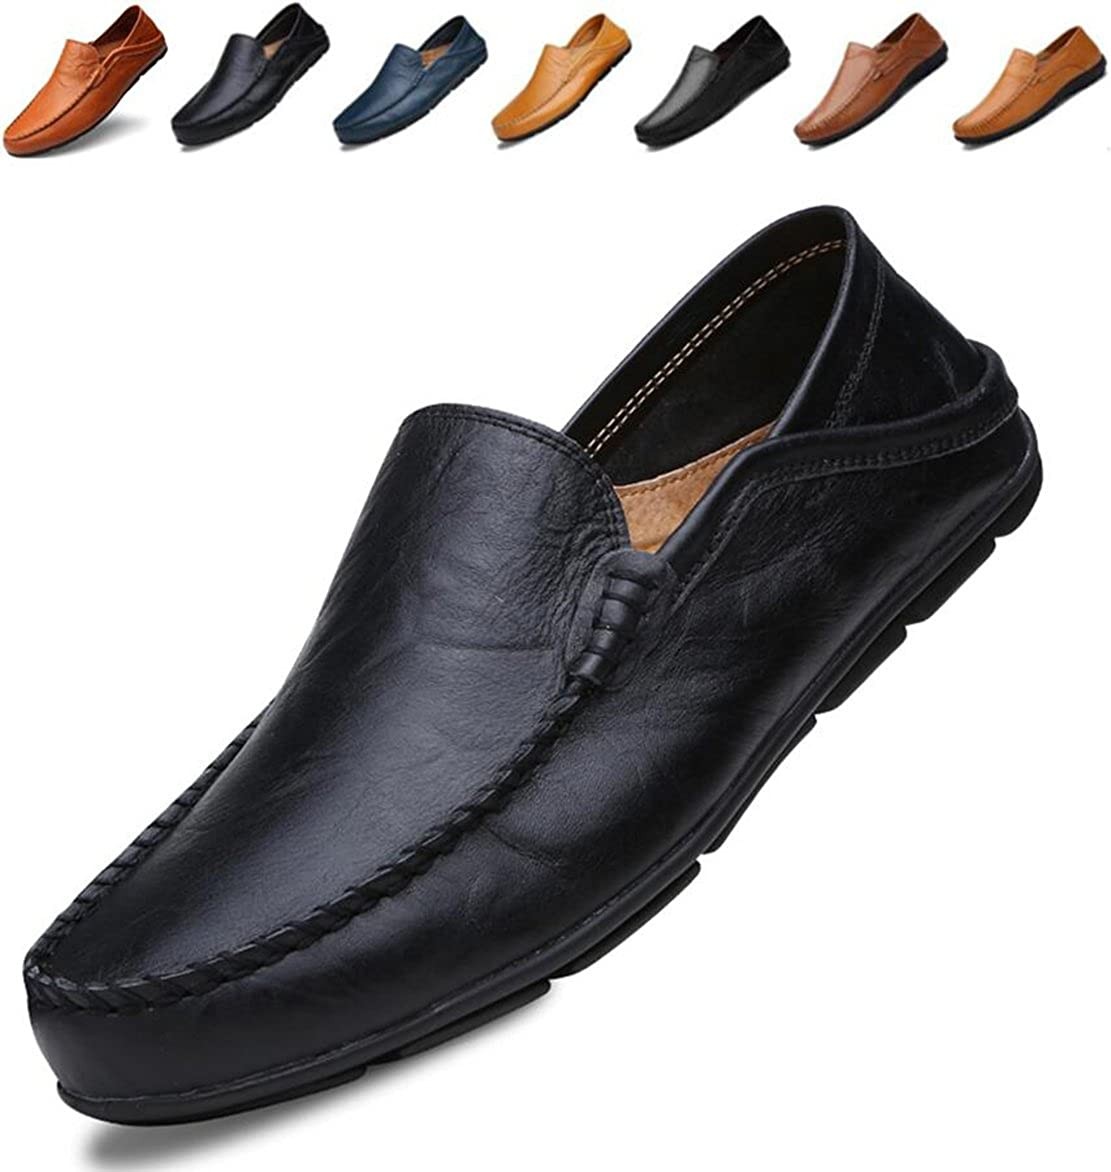 c892fff186a24 Go Tour Men's Premium Genuine Leather Casual Slip on Loafers Breathable  Driving Shoes Fashion Slipper